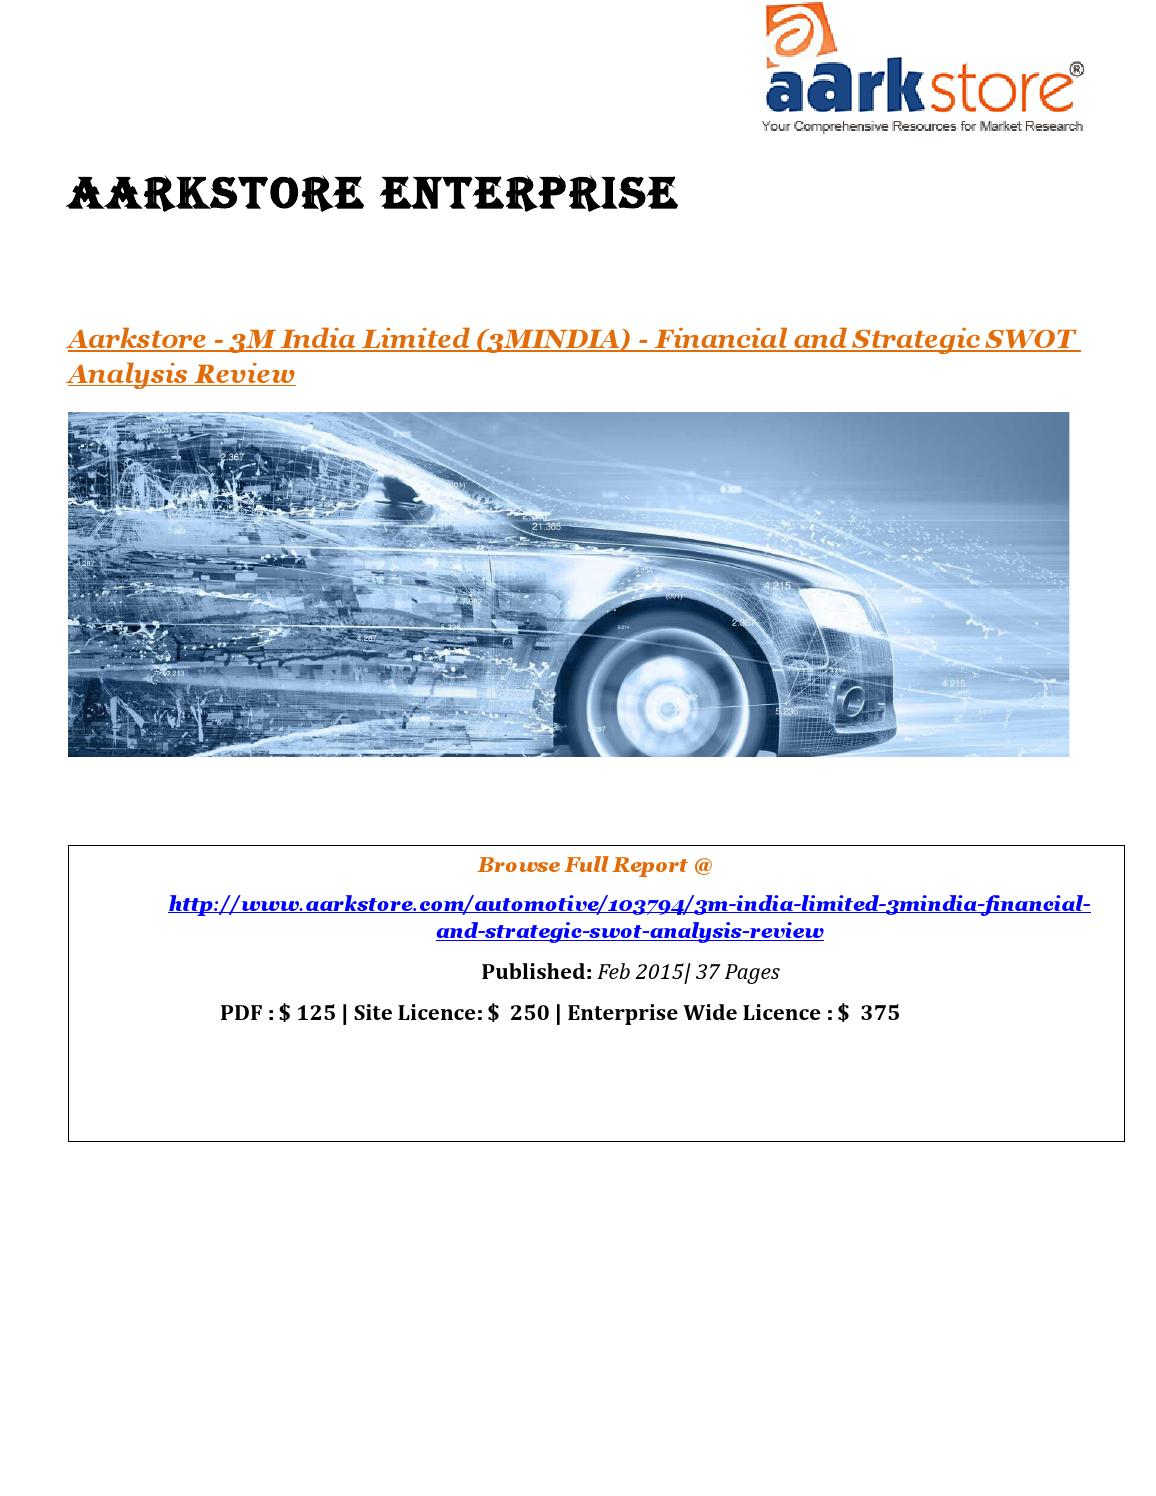 Aarkstore 3m india limited (3mindia) financial and strategic